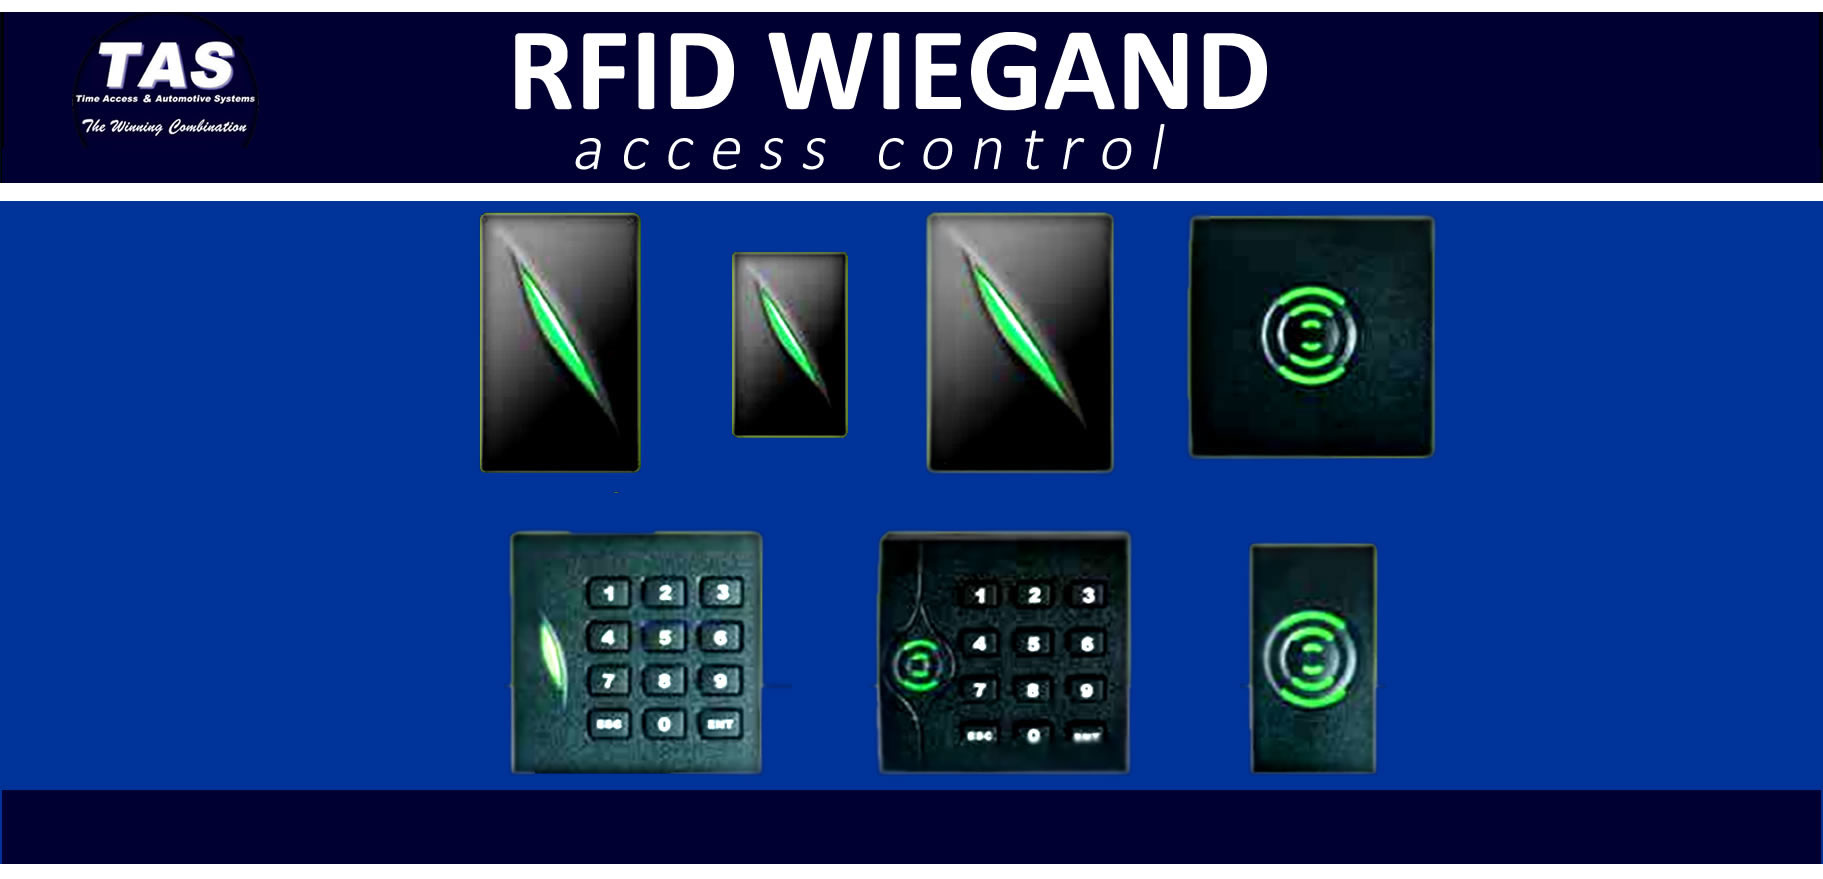 rfid wiegand proximity clock banner